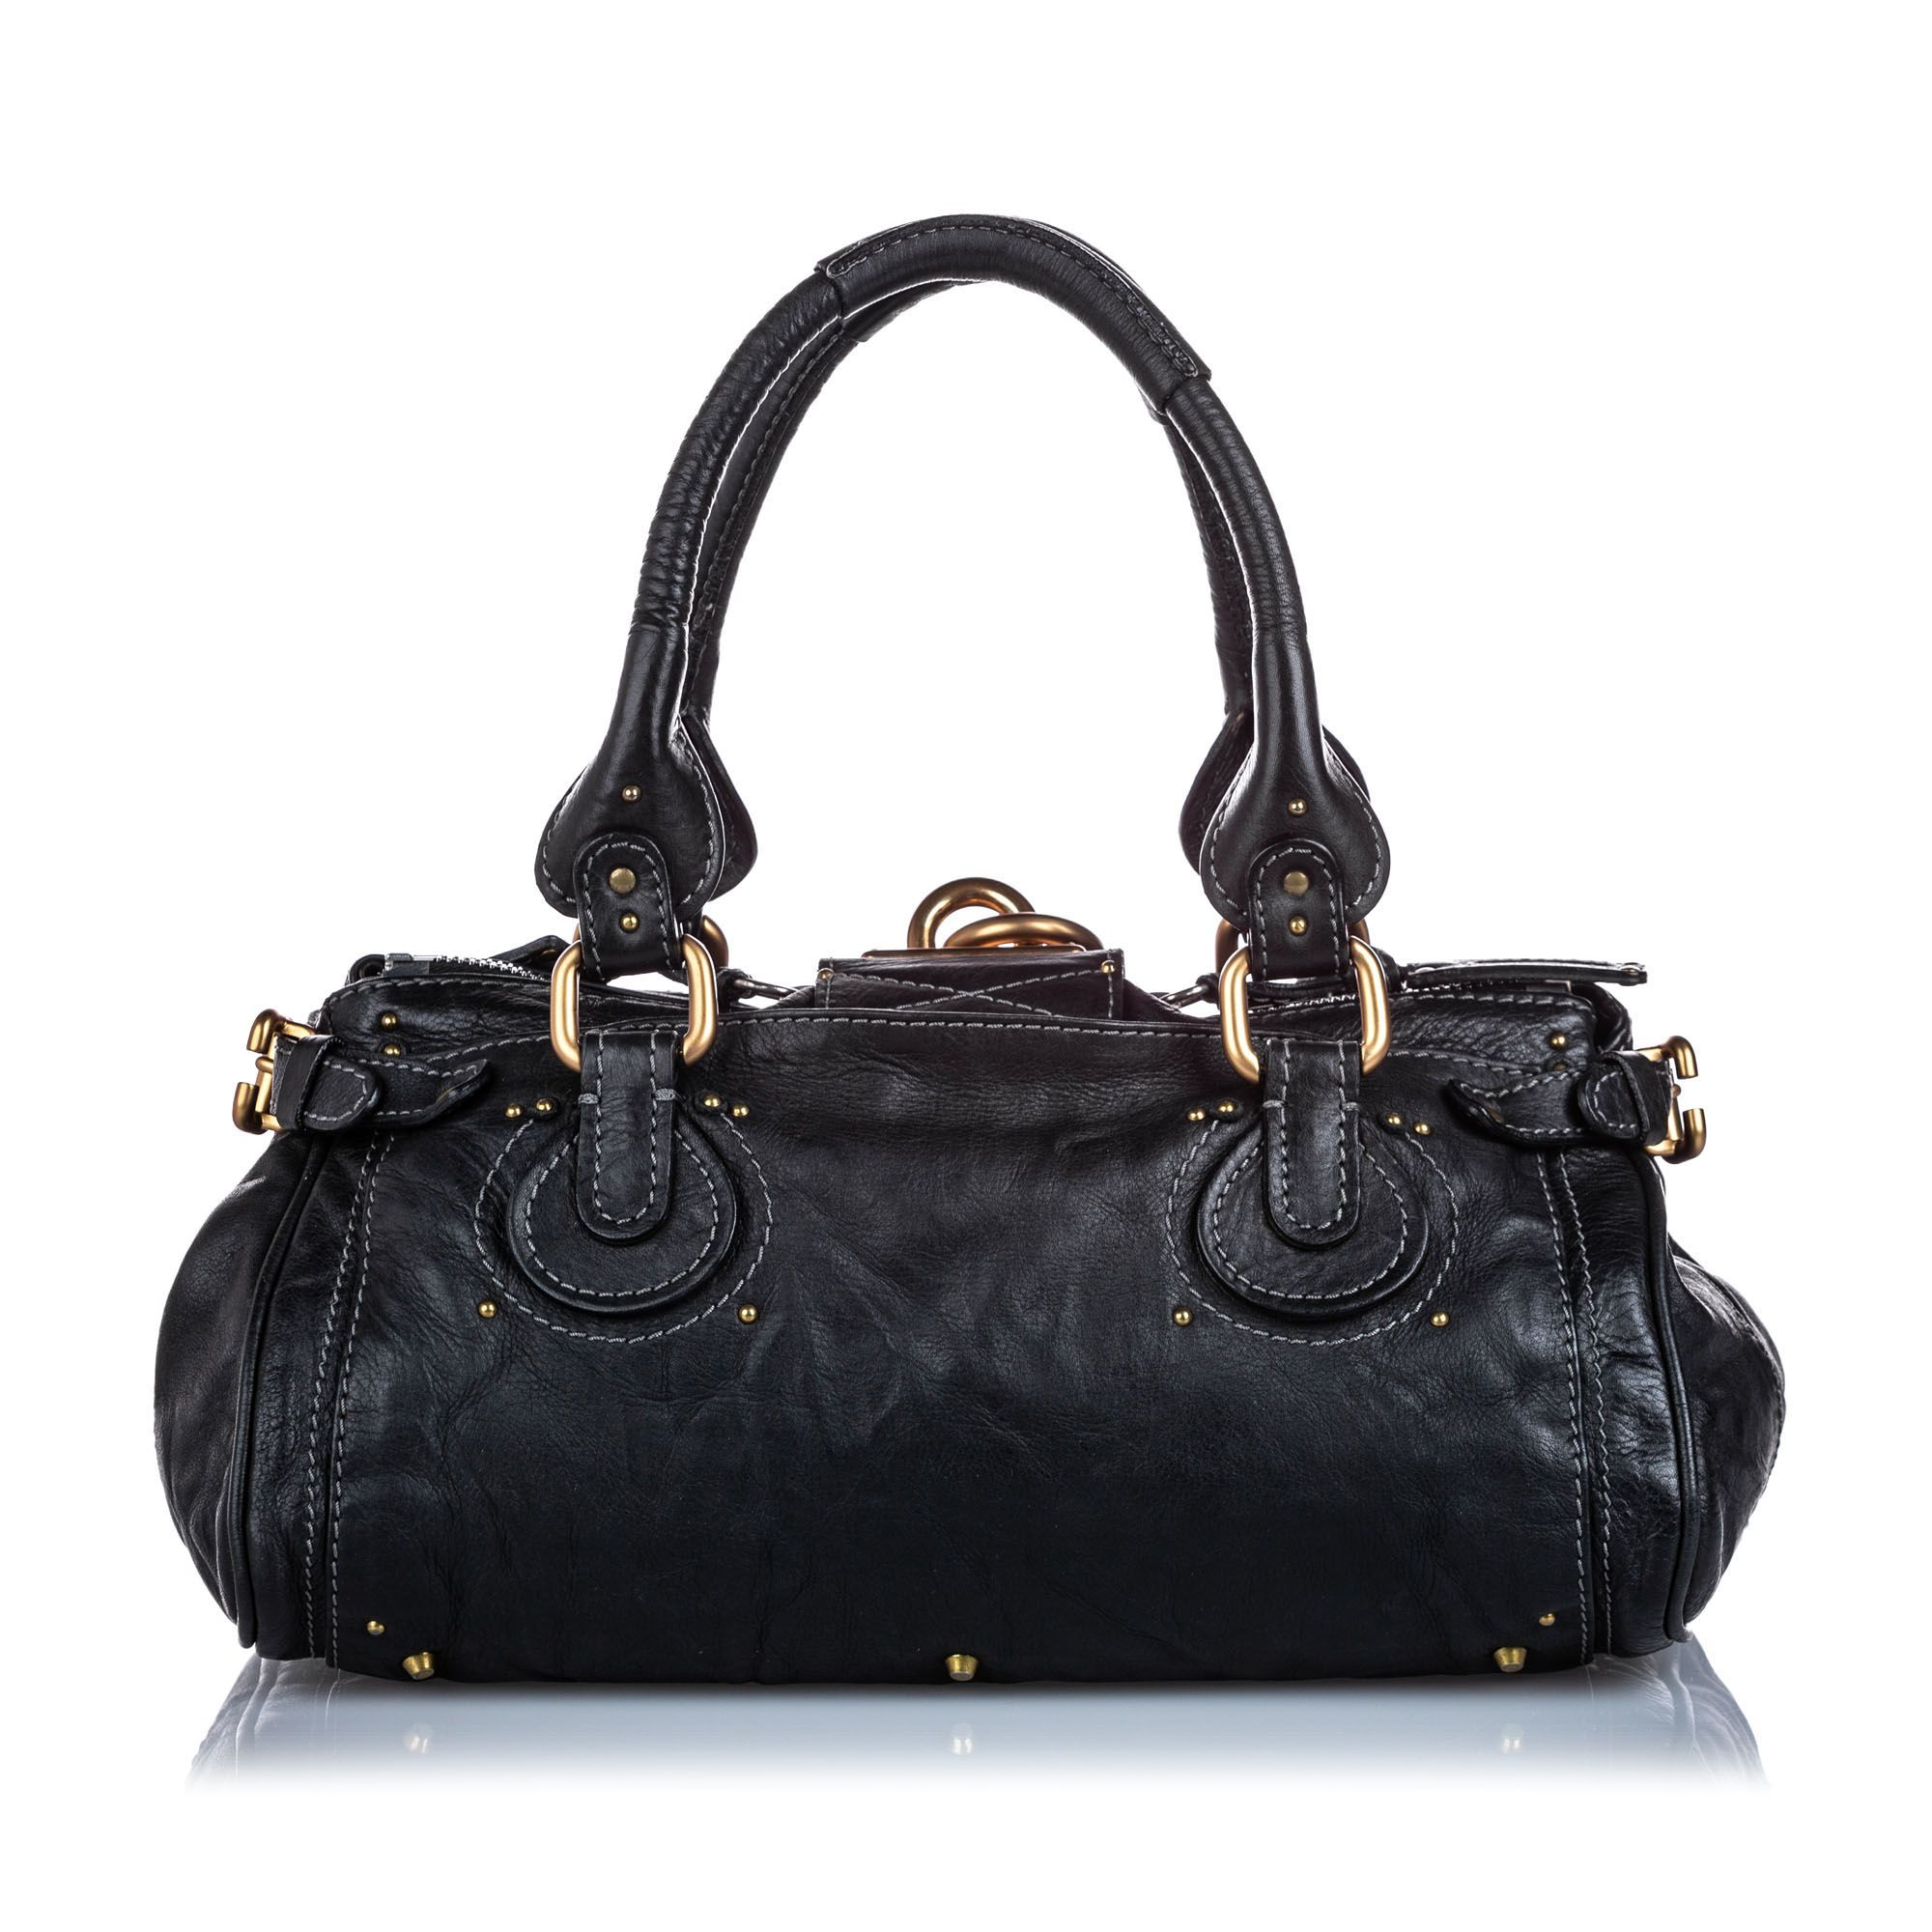 Vintage Chloe Leather Paddington Handbag Black